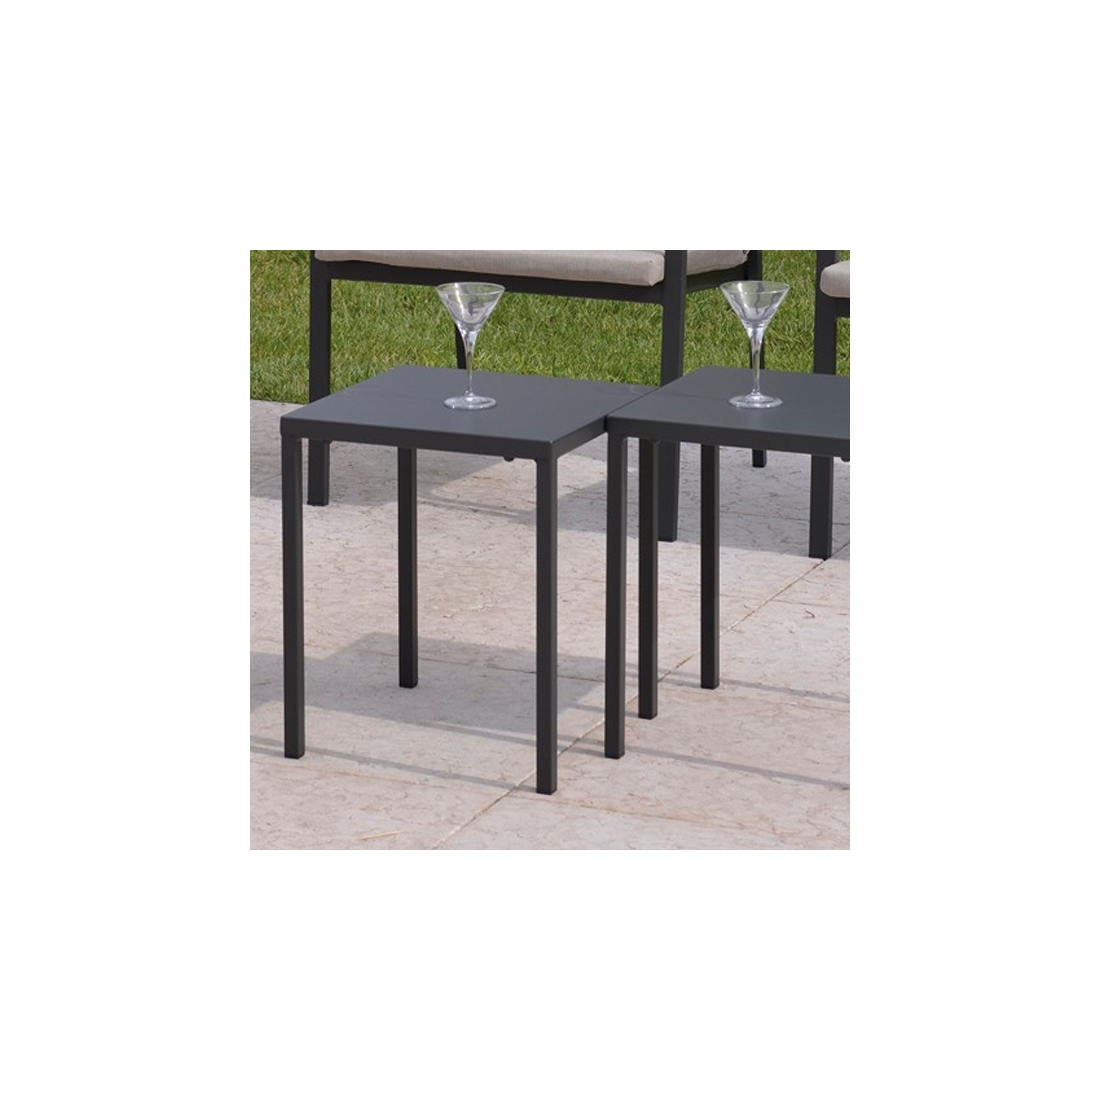 Petite table basse de jardin rd italia zendart design for Table jardin design